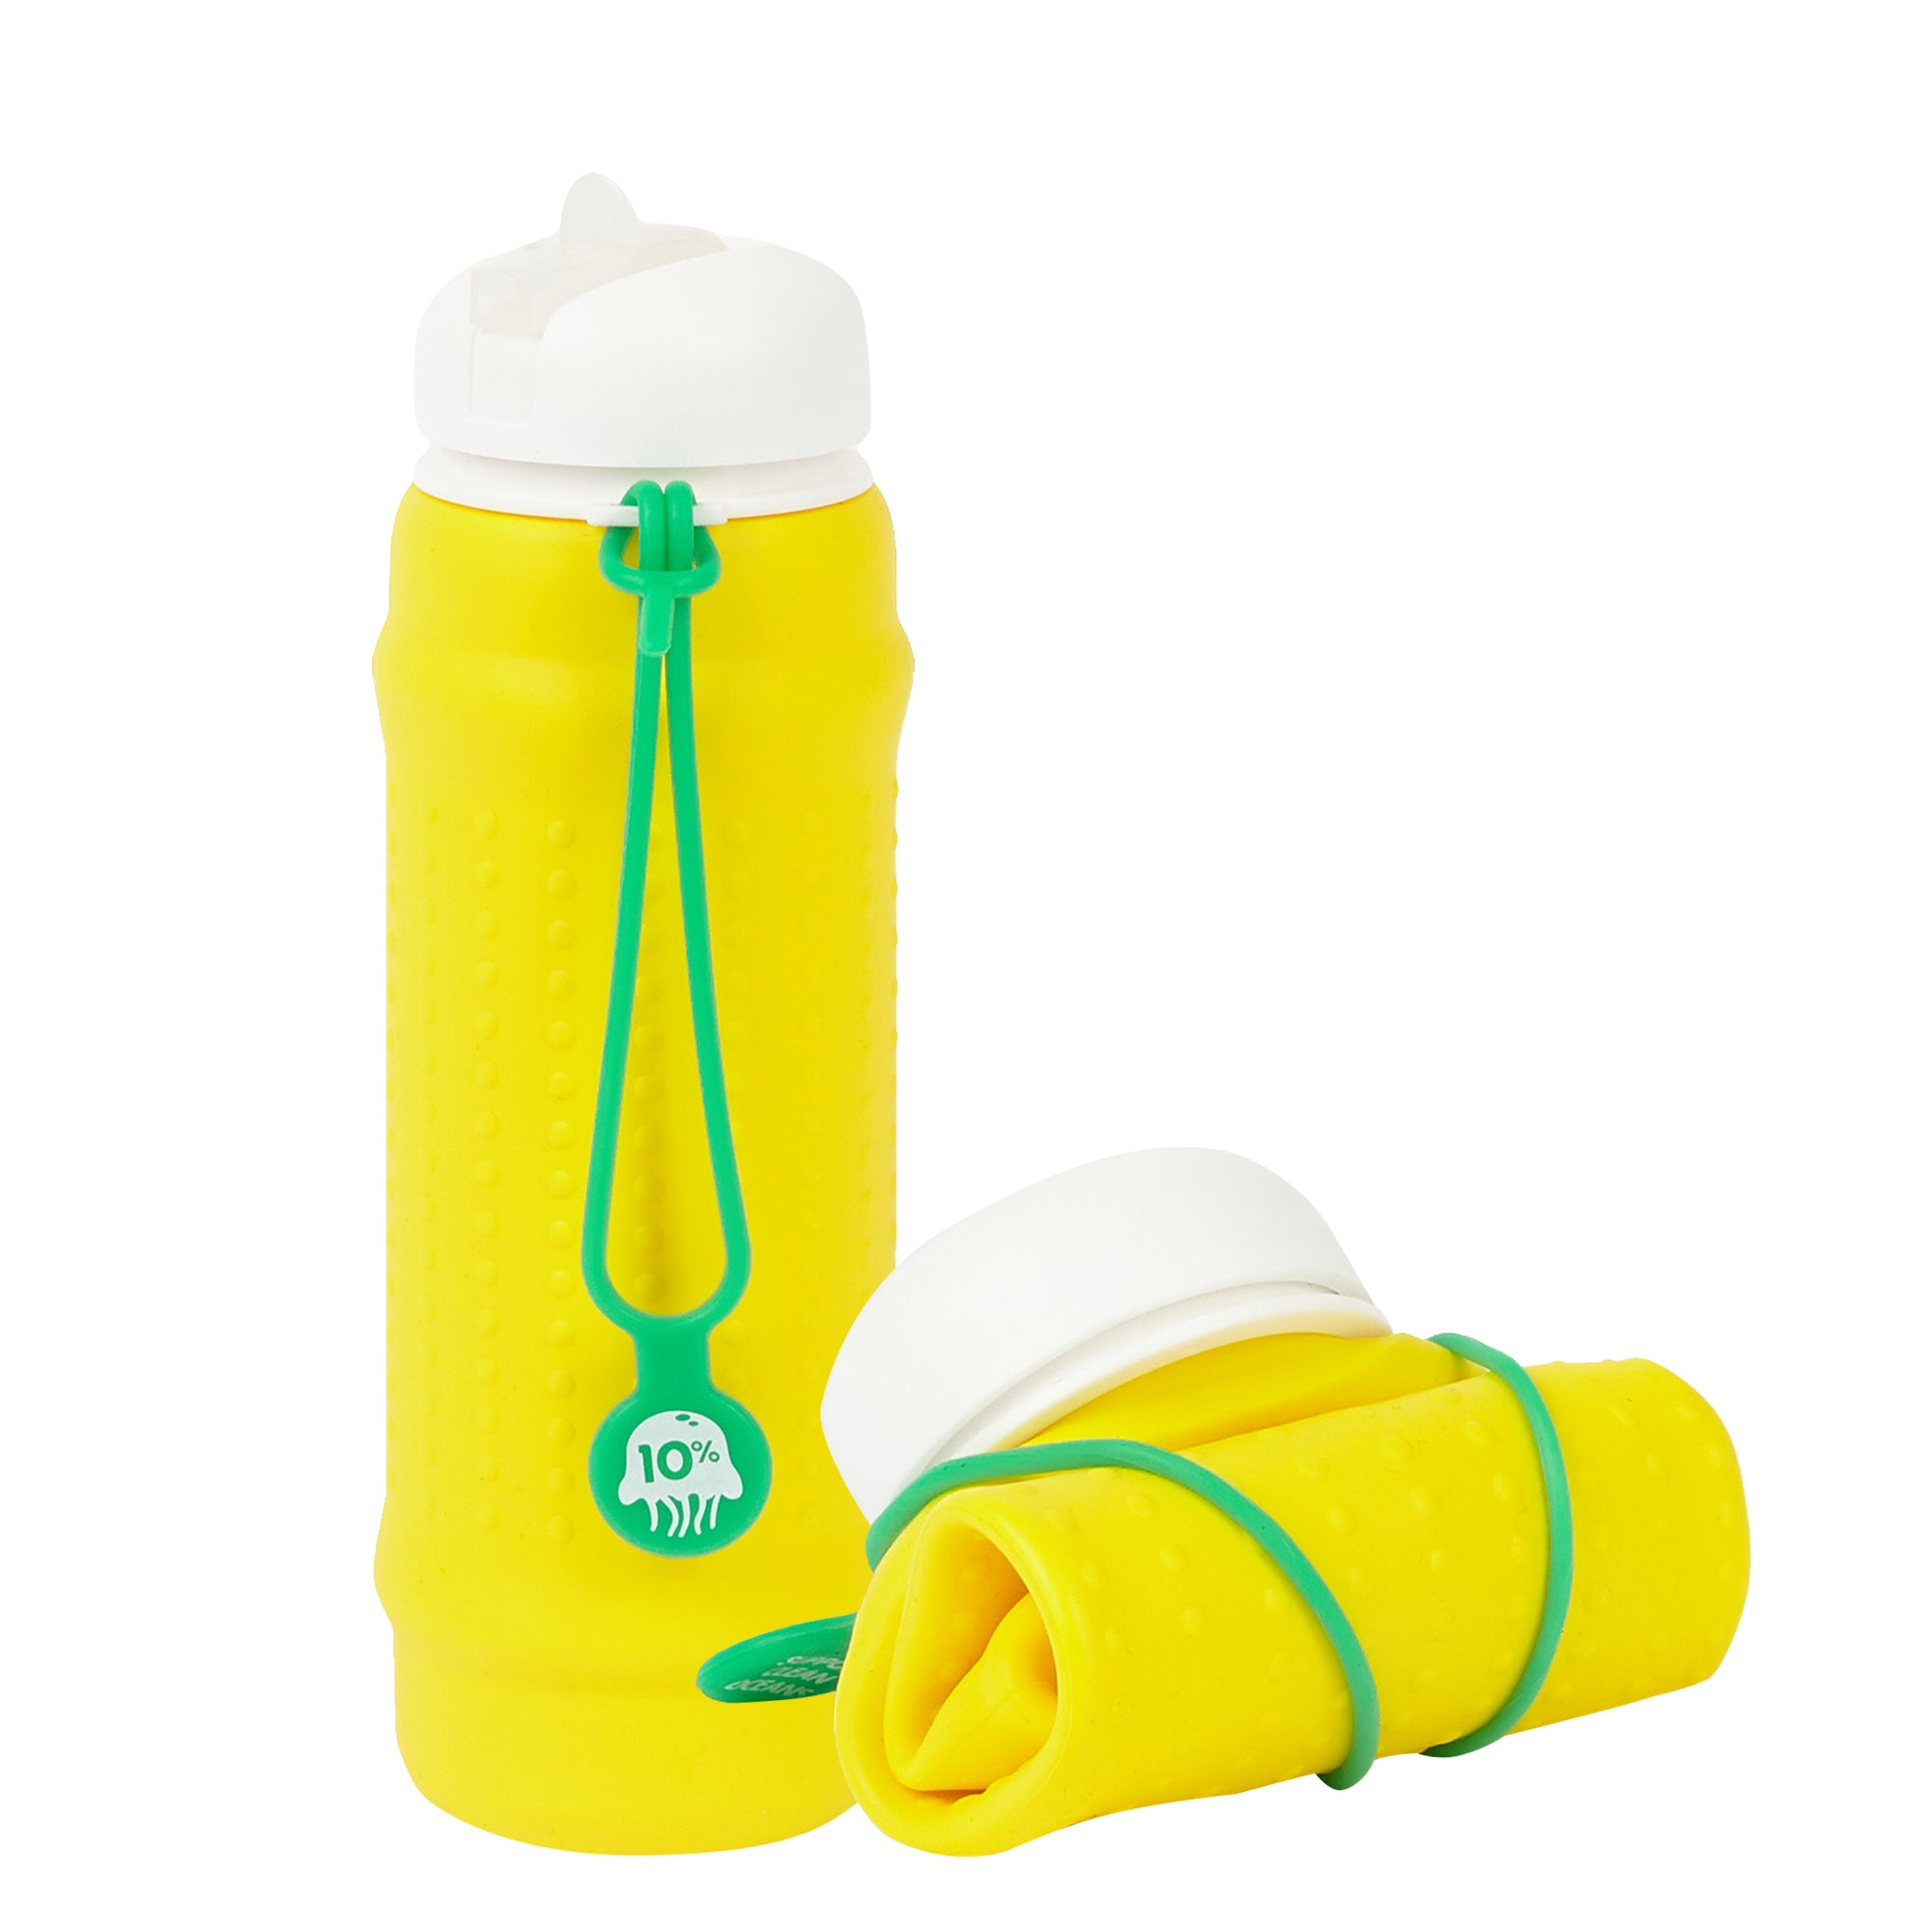 olla Bottle - Yellow, White Lid + Green Strap - tall and rolled